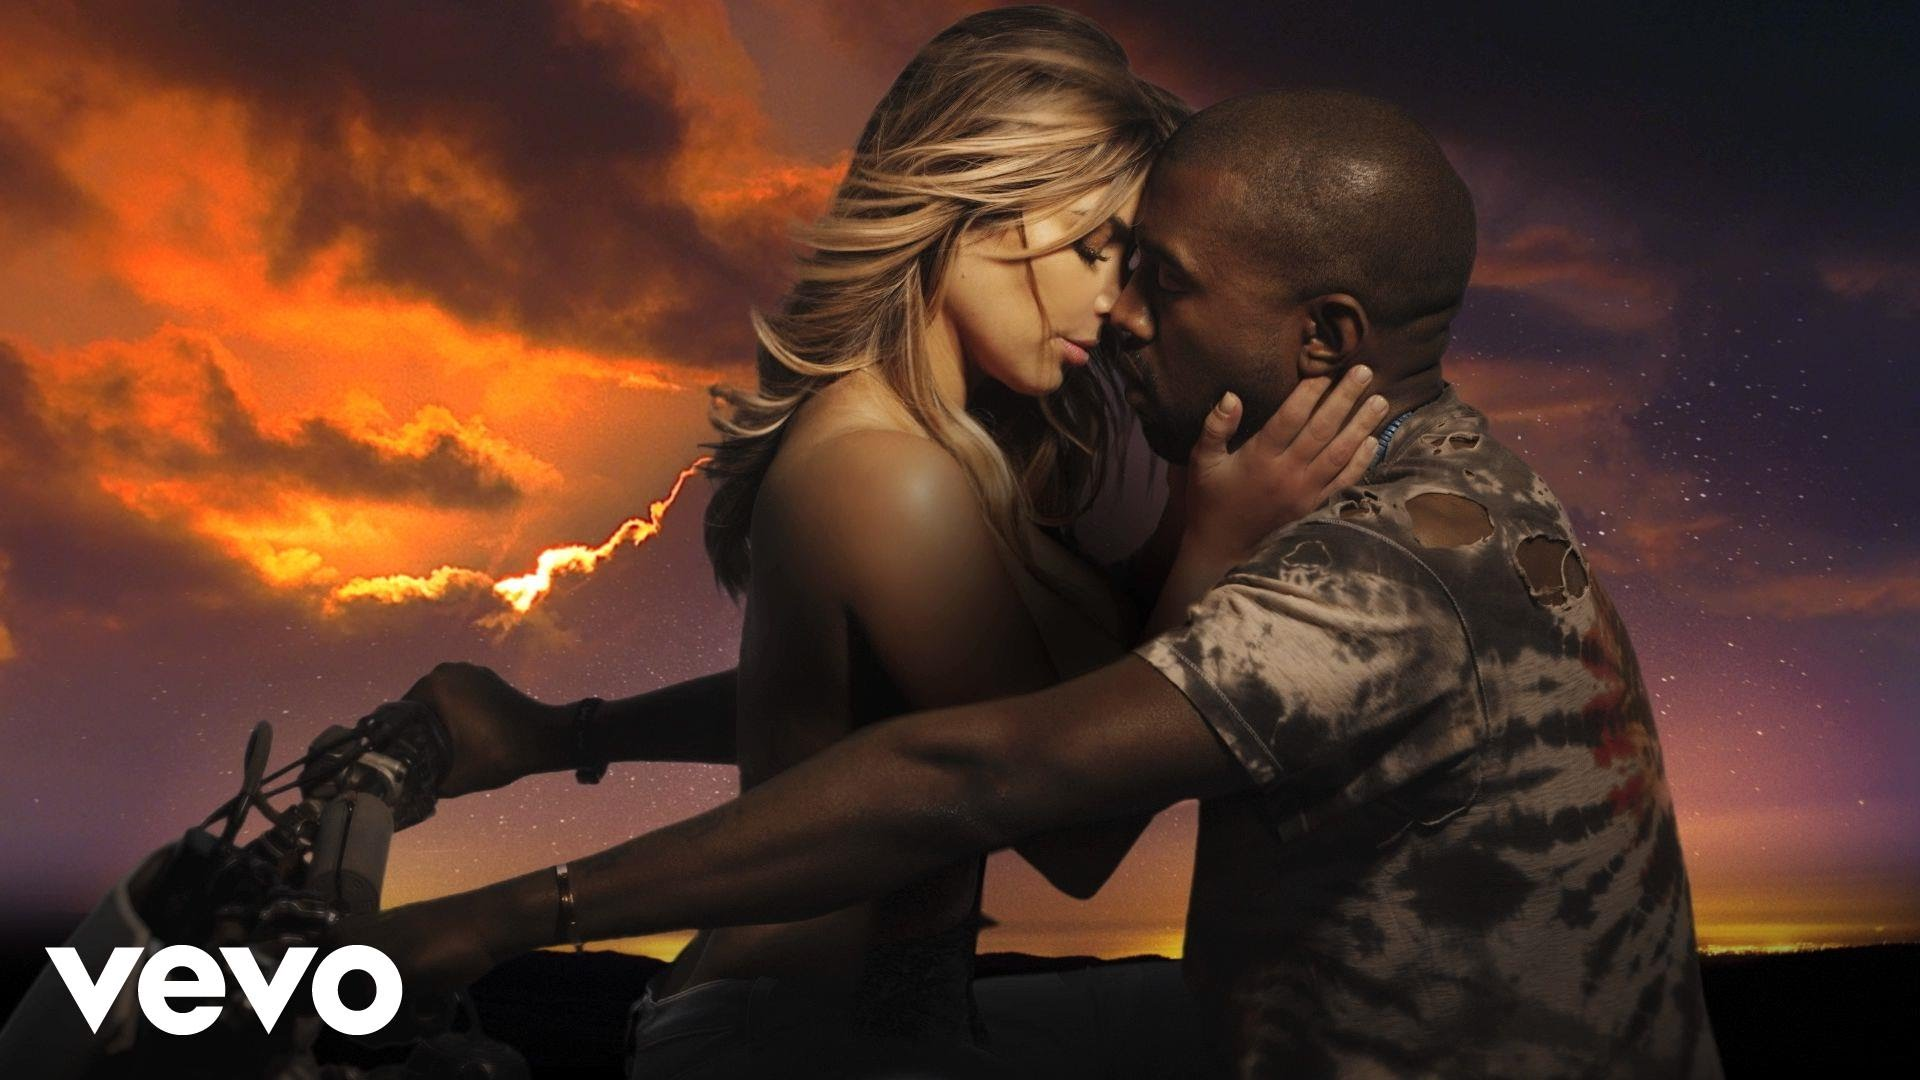 Kanye West & Kim Kardashian – Bound 2 (Explicit)